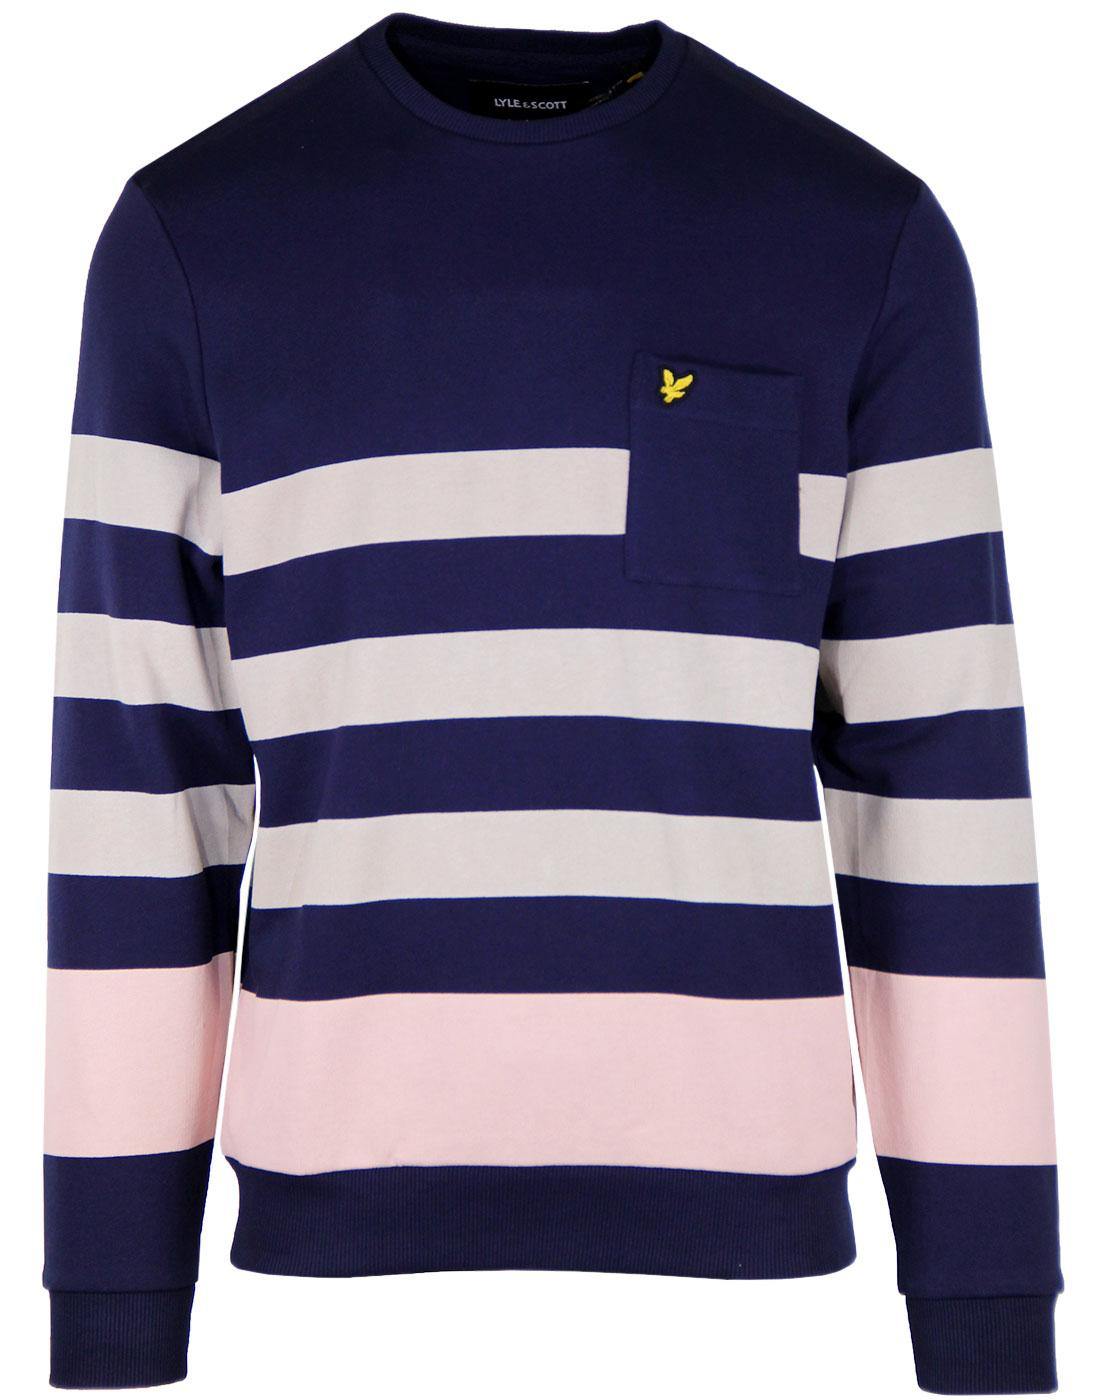 LYLE & SCOTT Men's Retro Indie Stripe Sweatshirt N